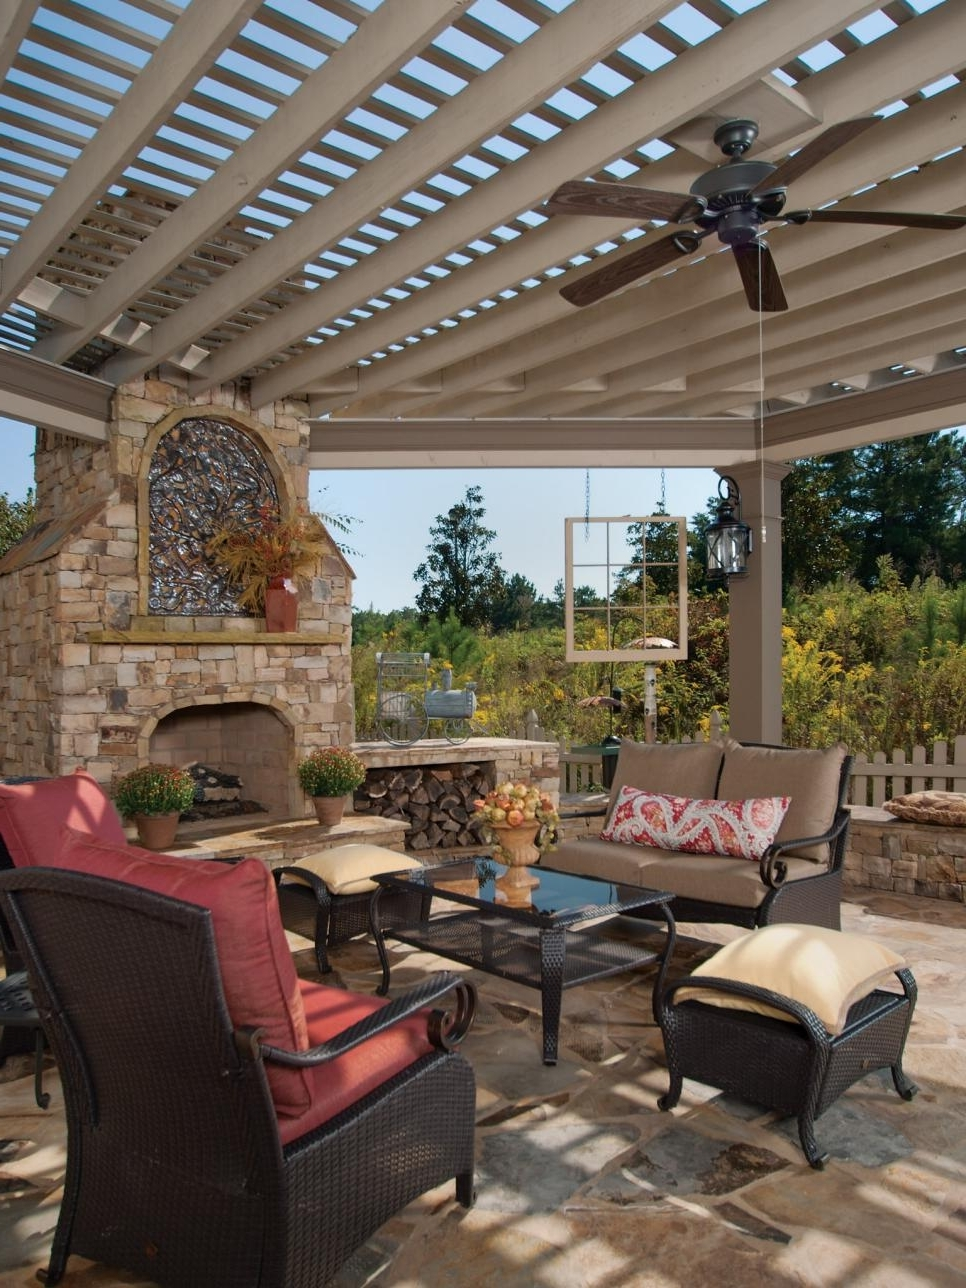 Fashionable Outdoor Ceiling Fans For Decks Intended For Pictures: Outdoor Fans For Decks, – Diy Home Design & Furniture (View 6 of 20)